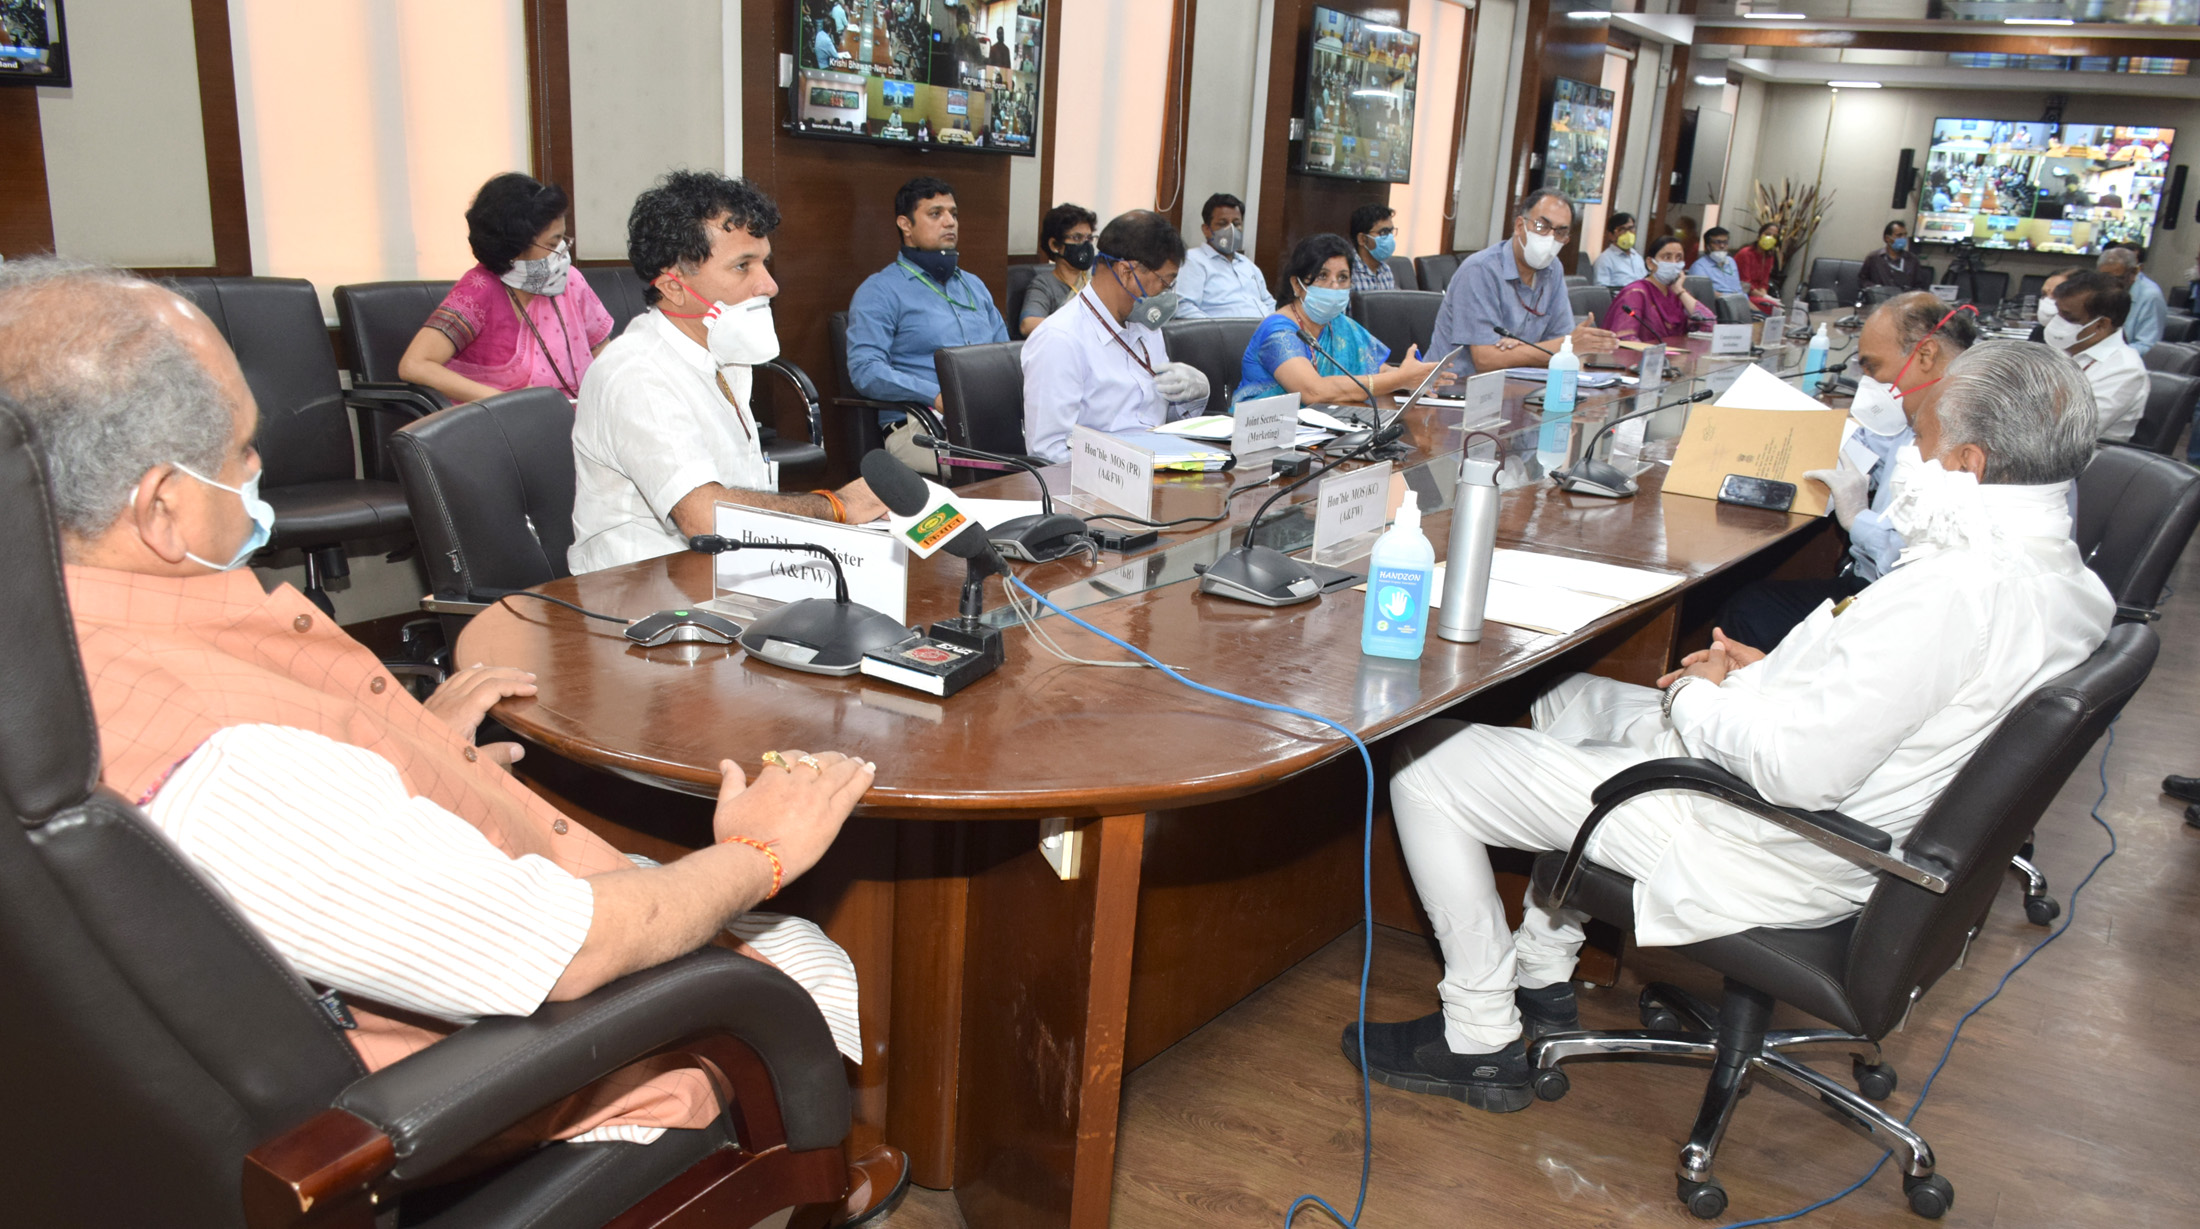 The Union Minister for Minority Affairs and Chairman, Central Waqf Council, Shri Mukhtar Abbas Naqvi addressing the CEOs, Chairmen of state Waqf boards through video conferencing, in New Delhi on April 16, 2020.